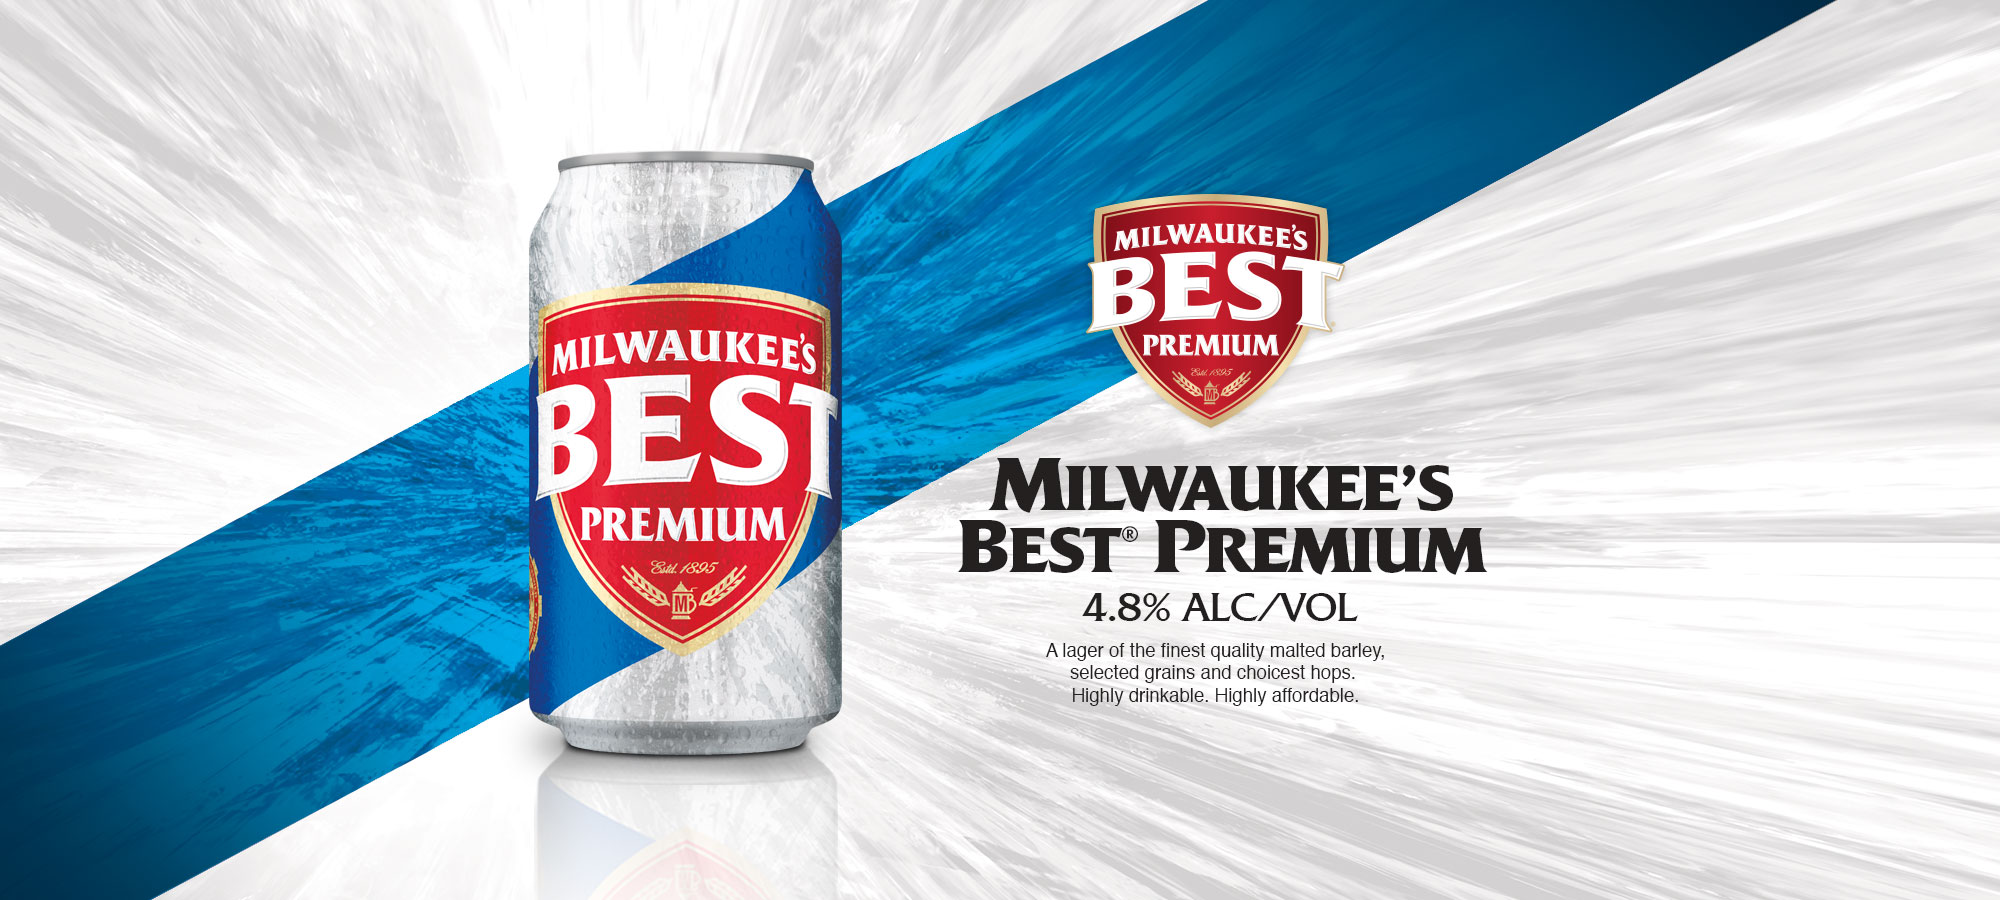 Milwaukee's Best Premium Mobile